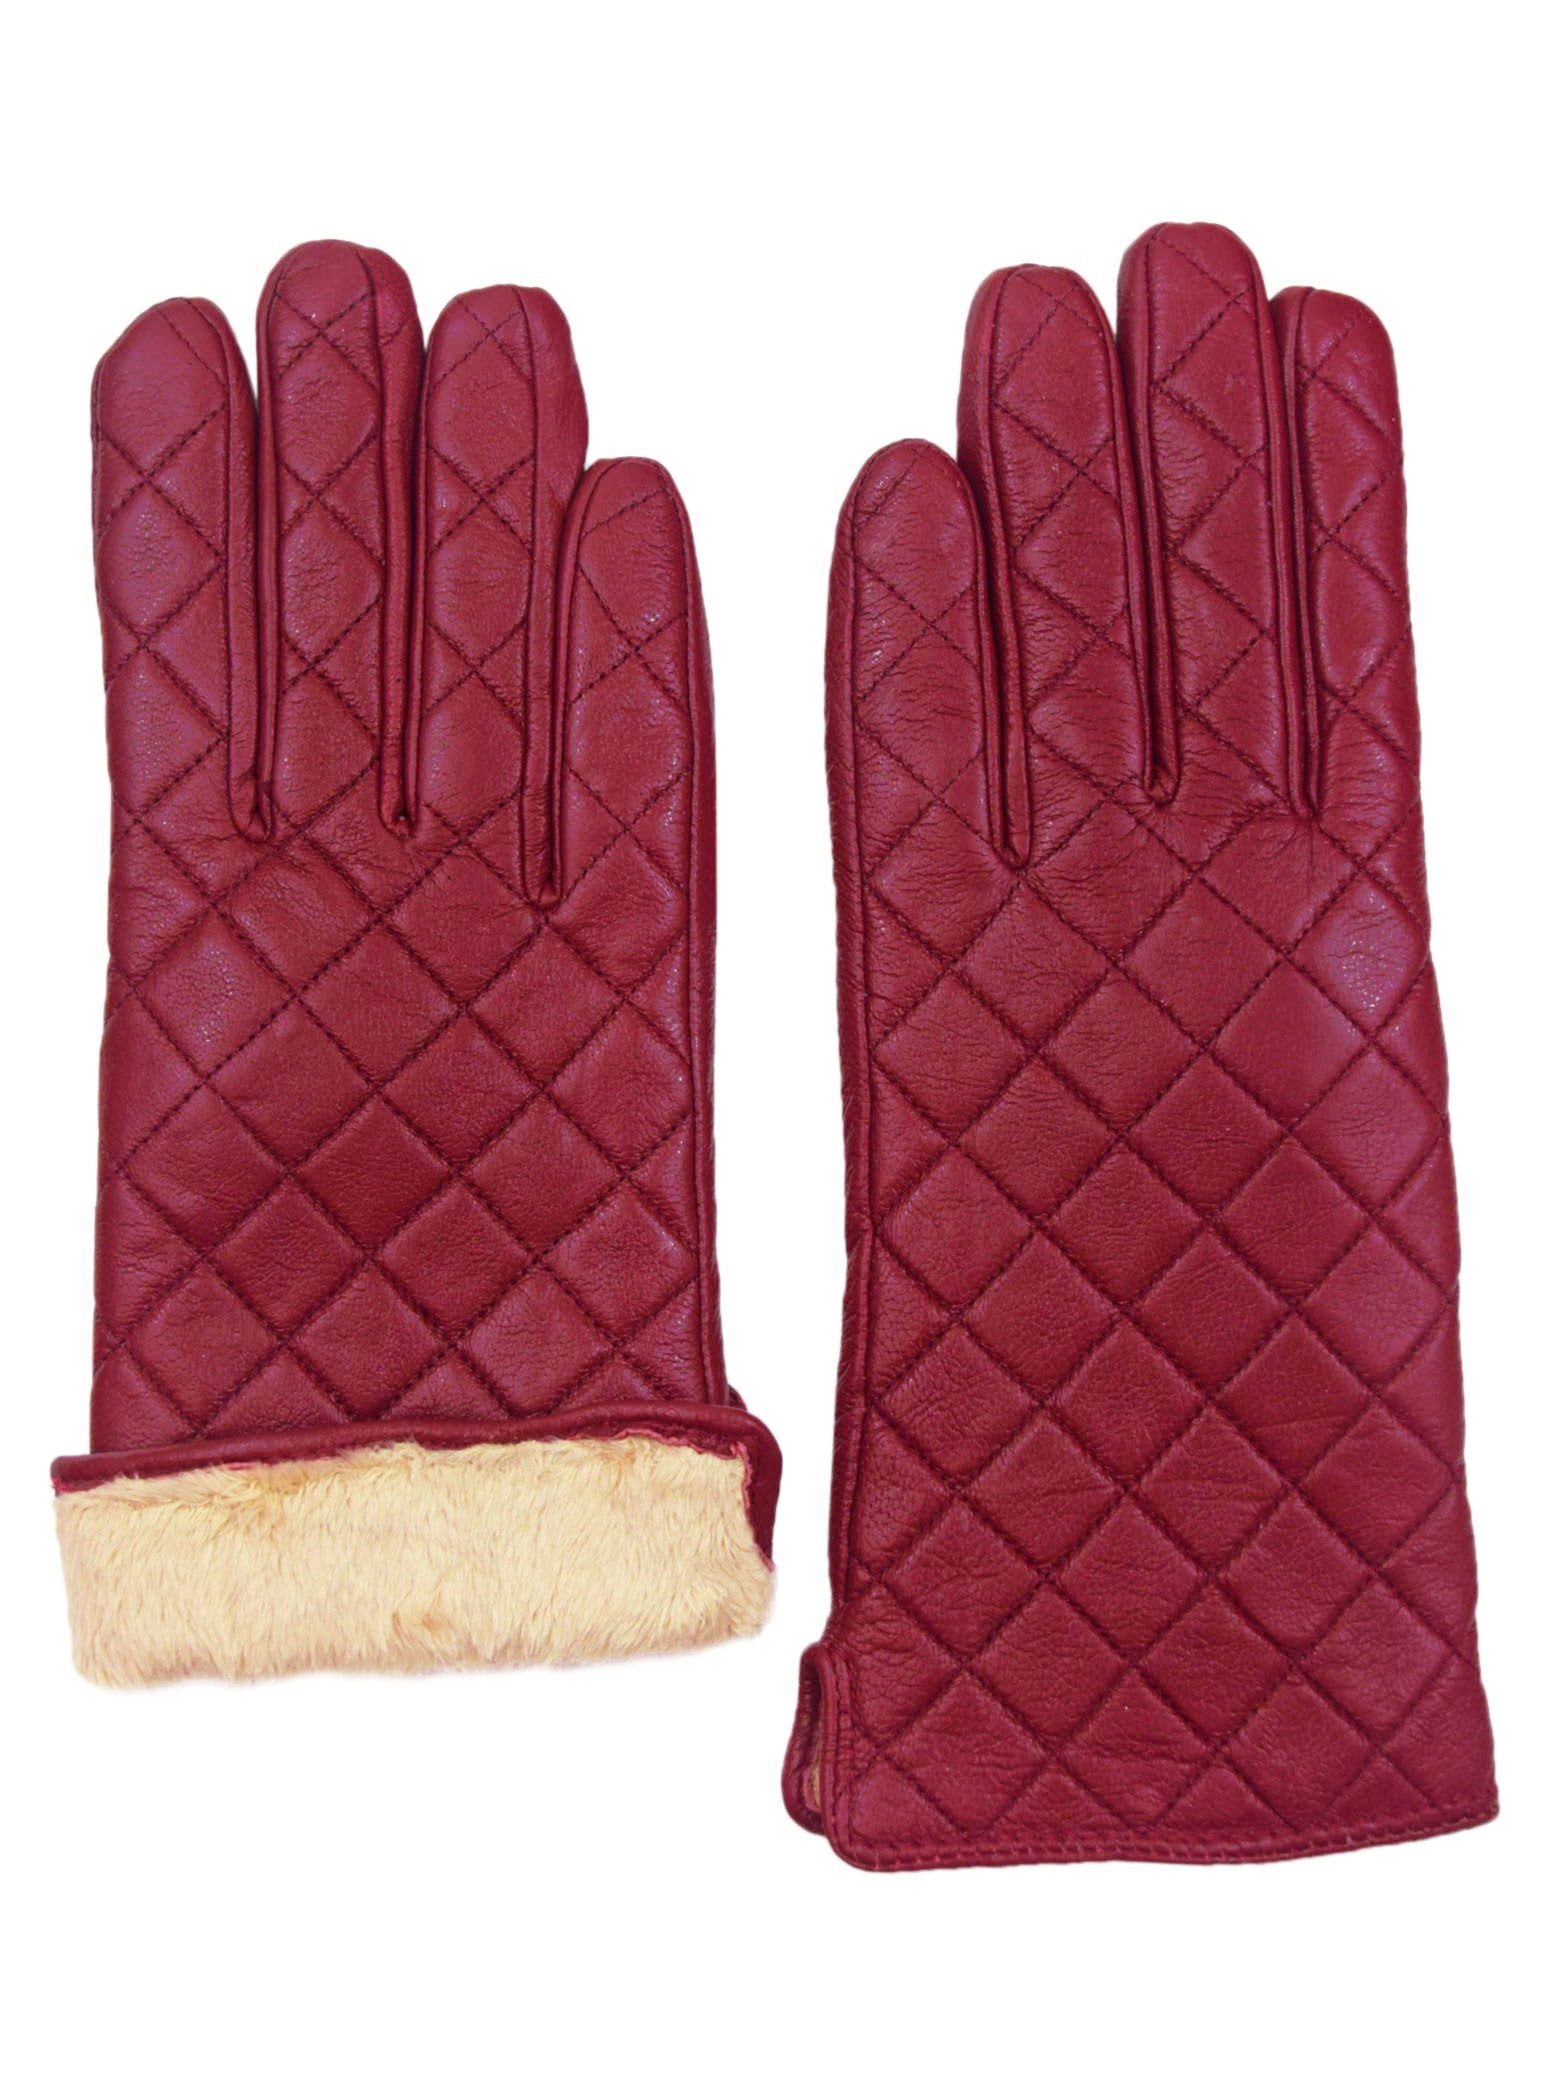 Giromy-Samoni-Womens-Warm-Winter-Leather-Quilted-Dress-Driving-Gloves-Red thumbnail 6